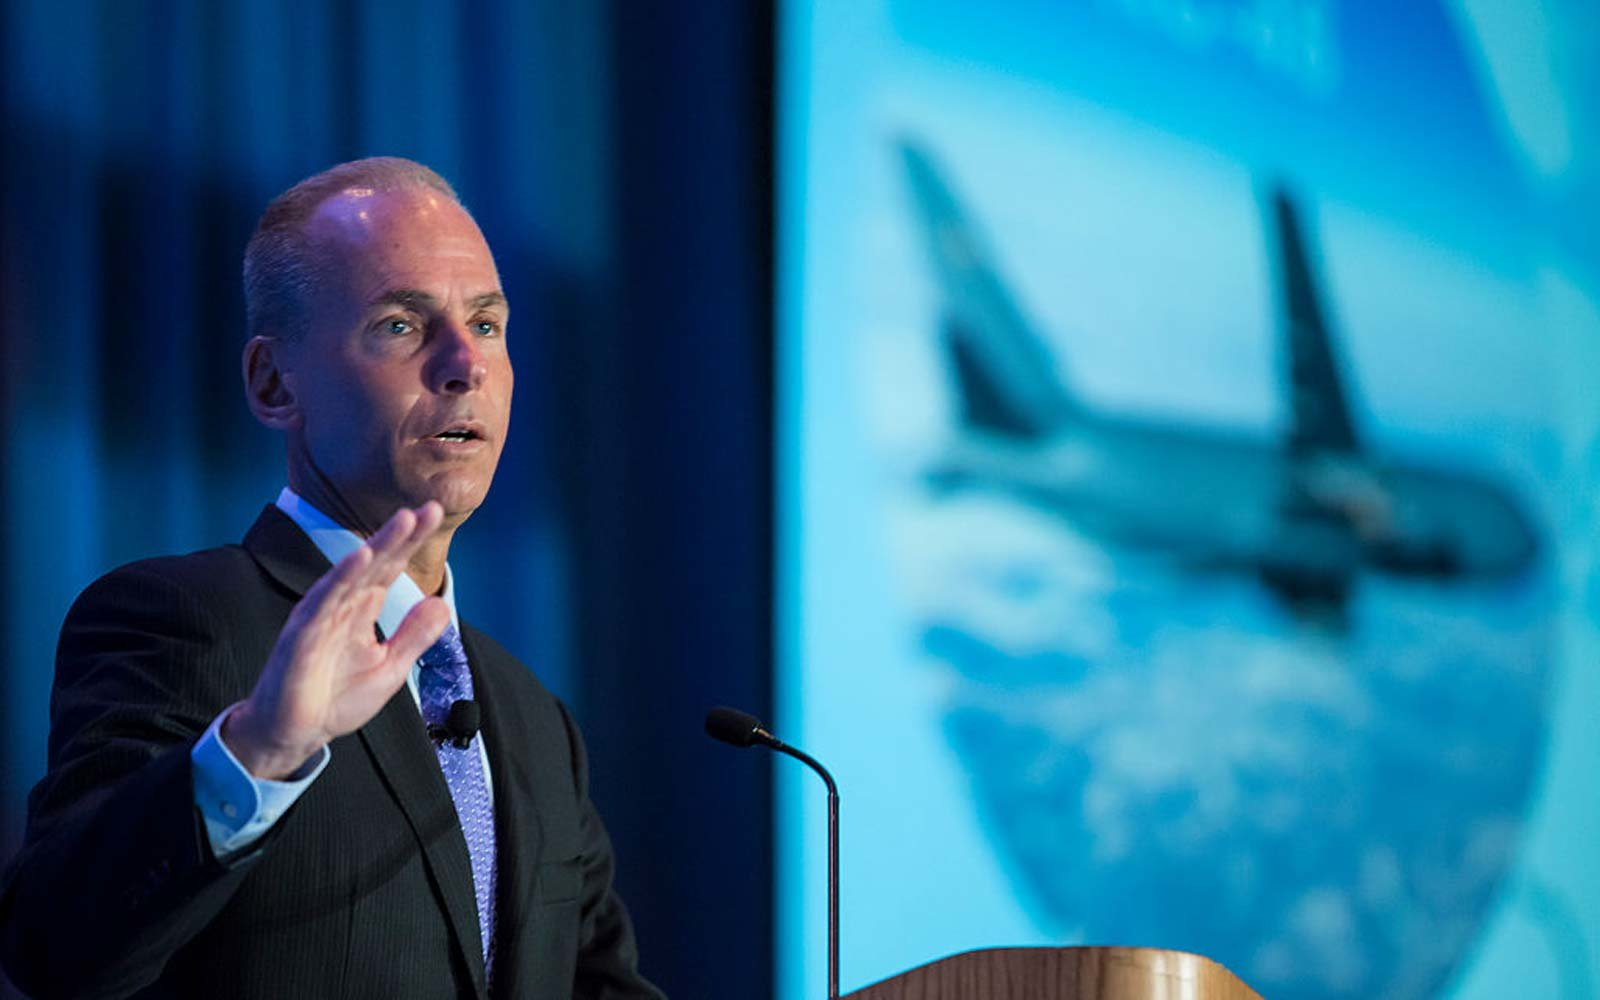 Boeing CEO Dennis Muilenburg gives a keynote speech during the SAE Aerotech Congress